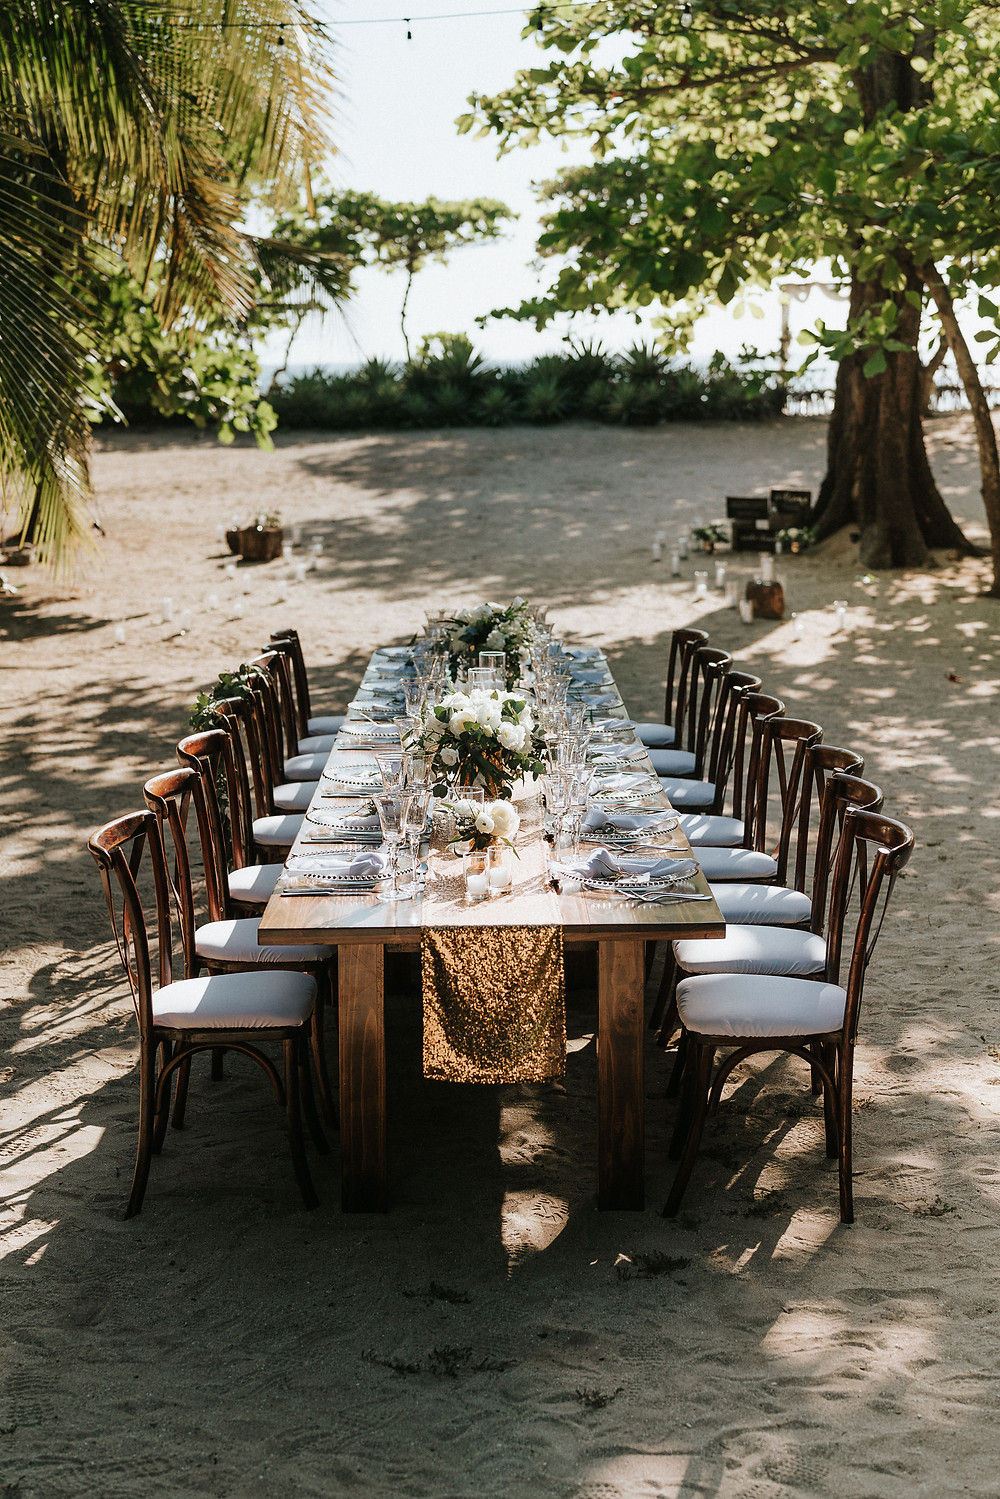 Small intimate wedding table setting